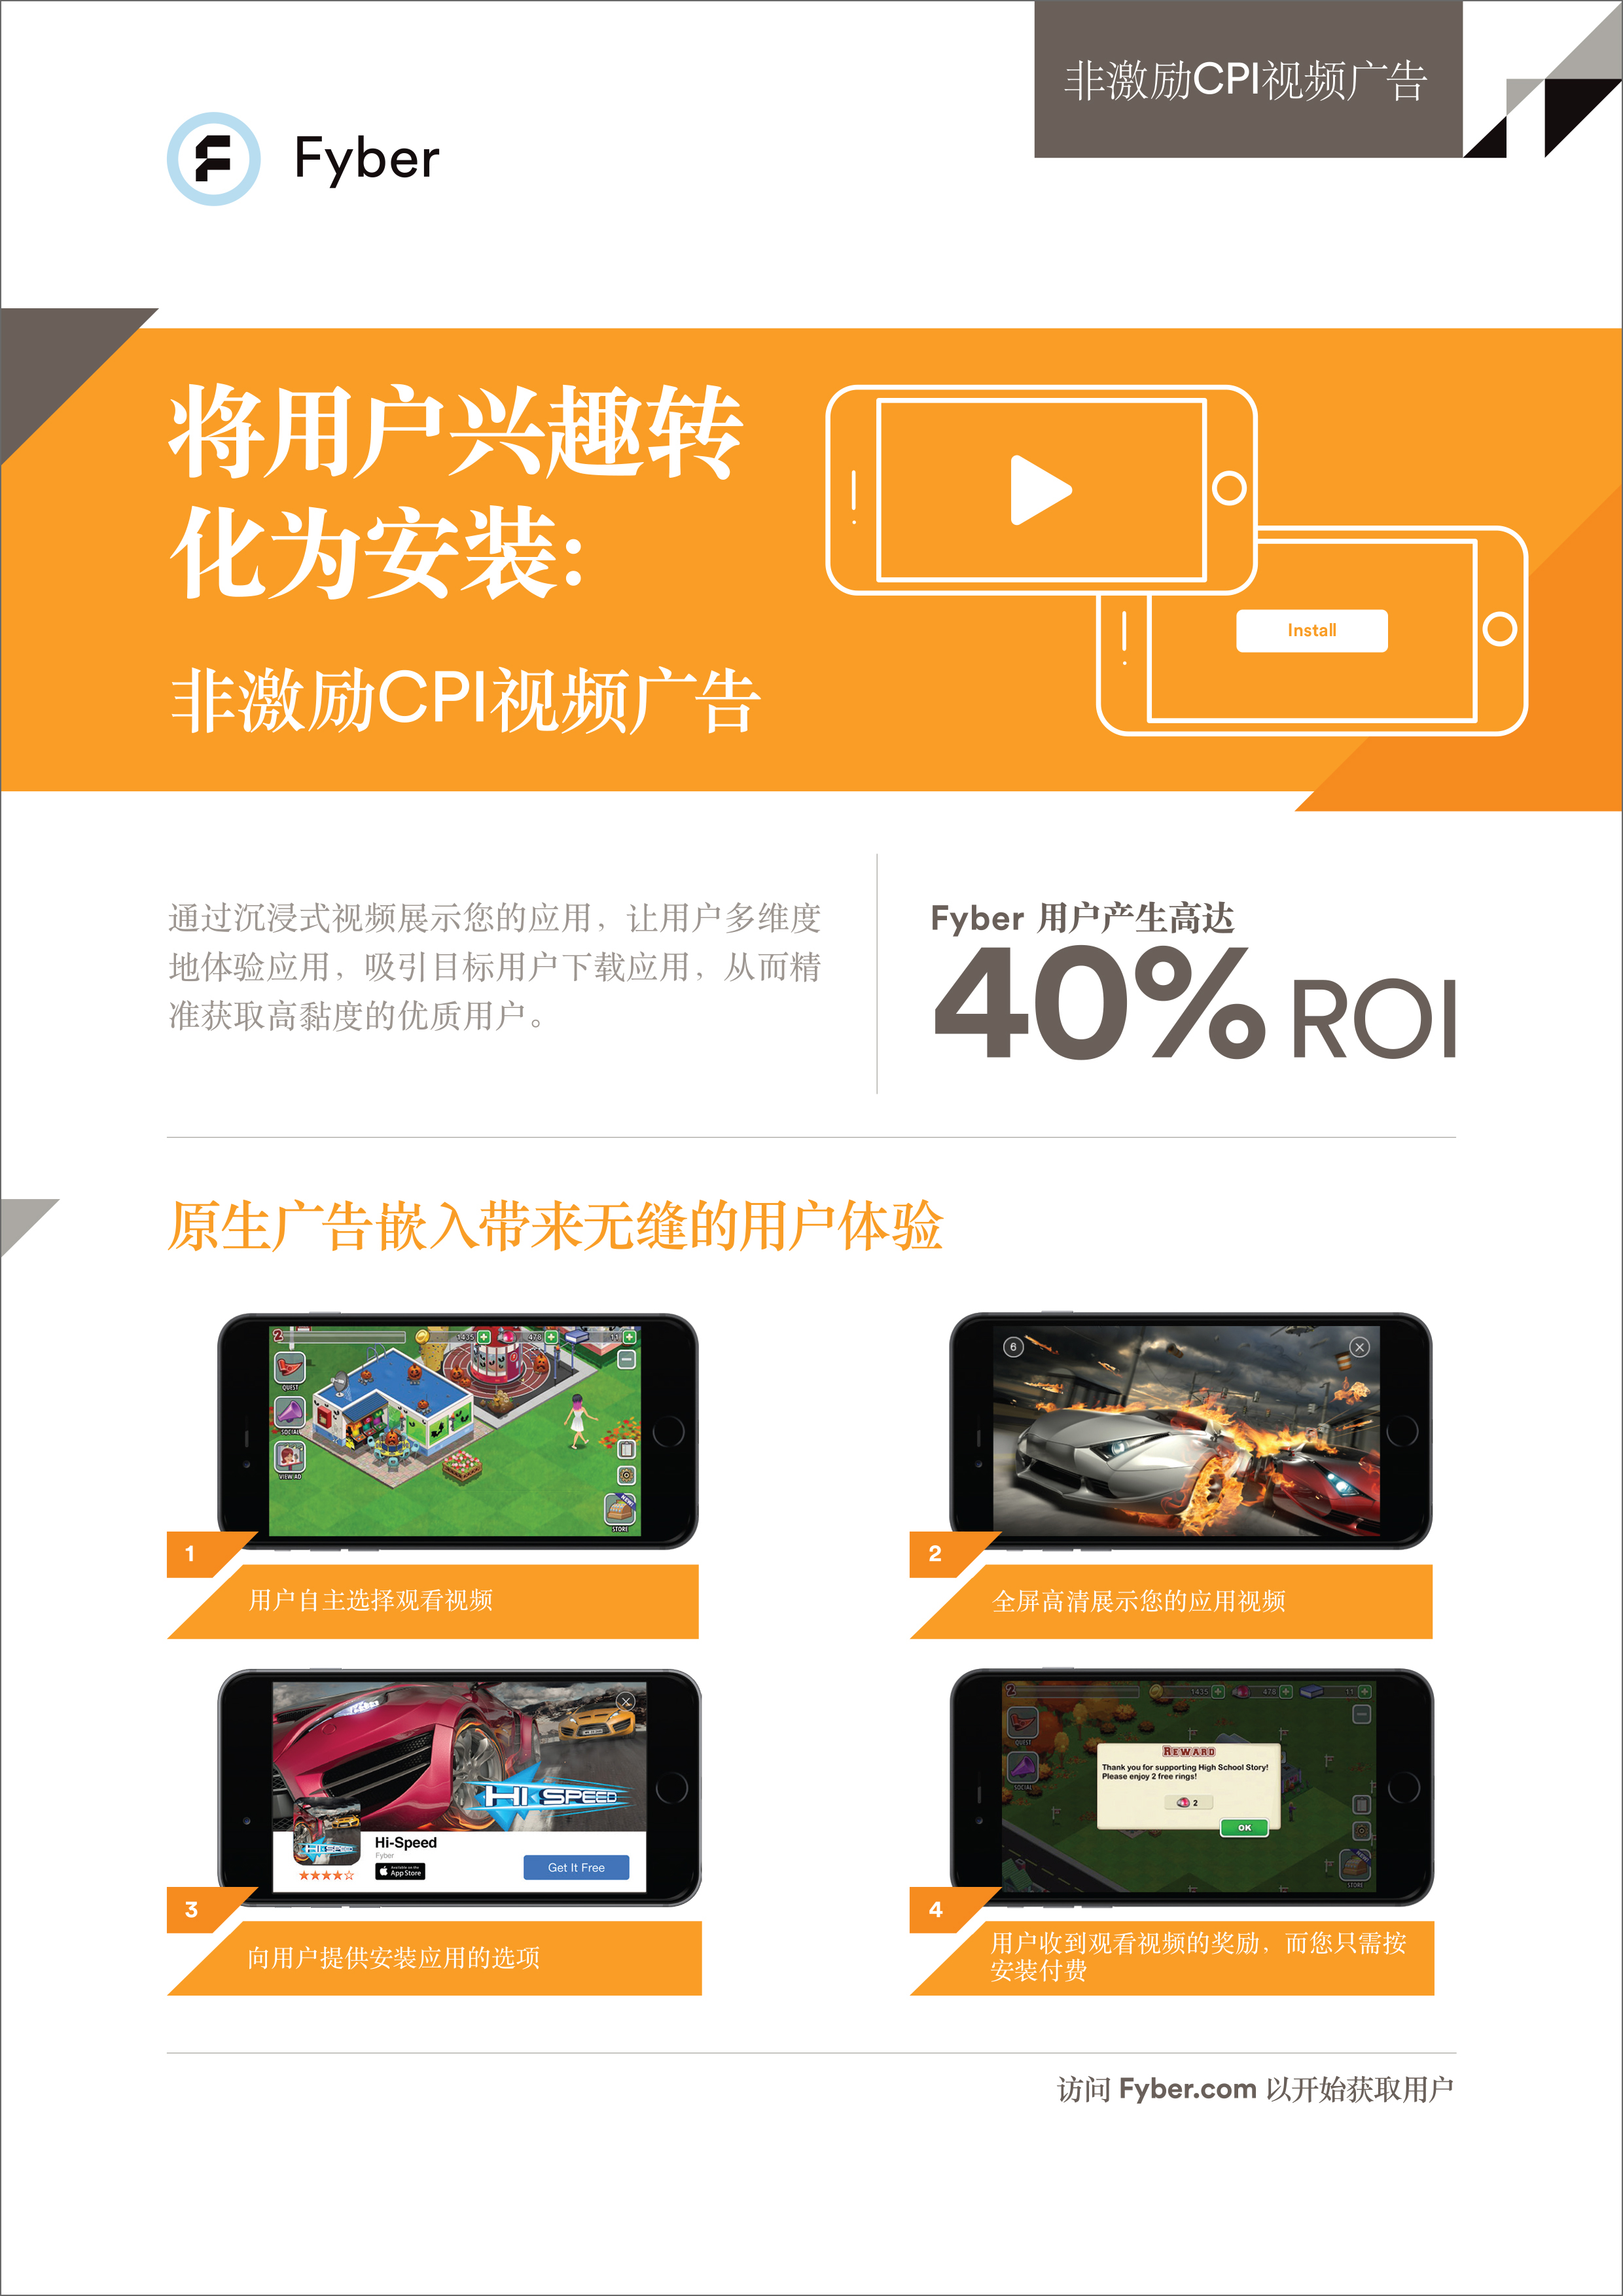 Mobile Video Advertising for CPI in Chinese